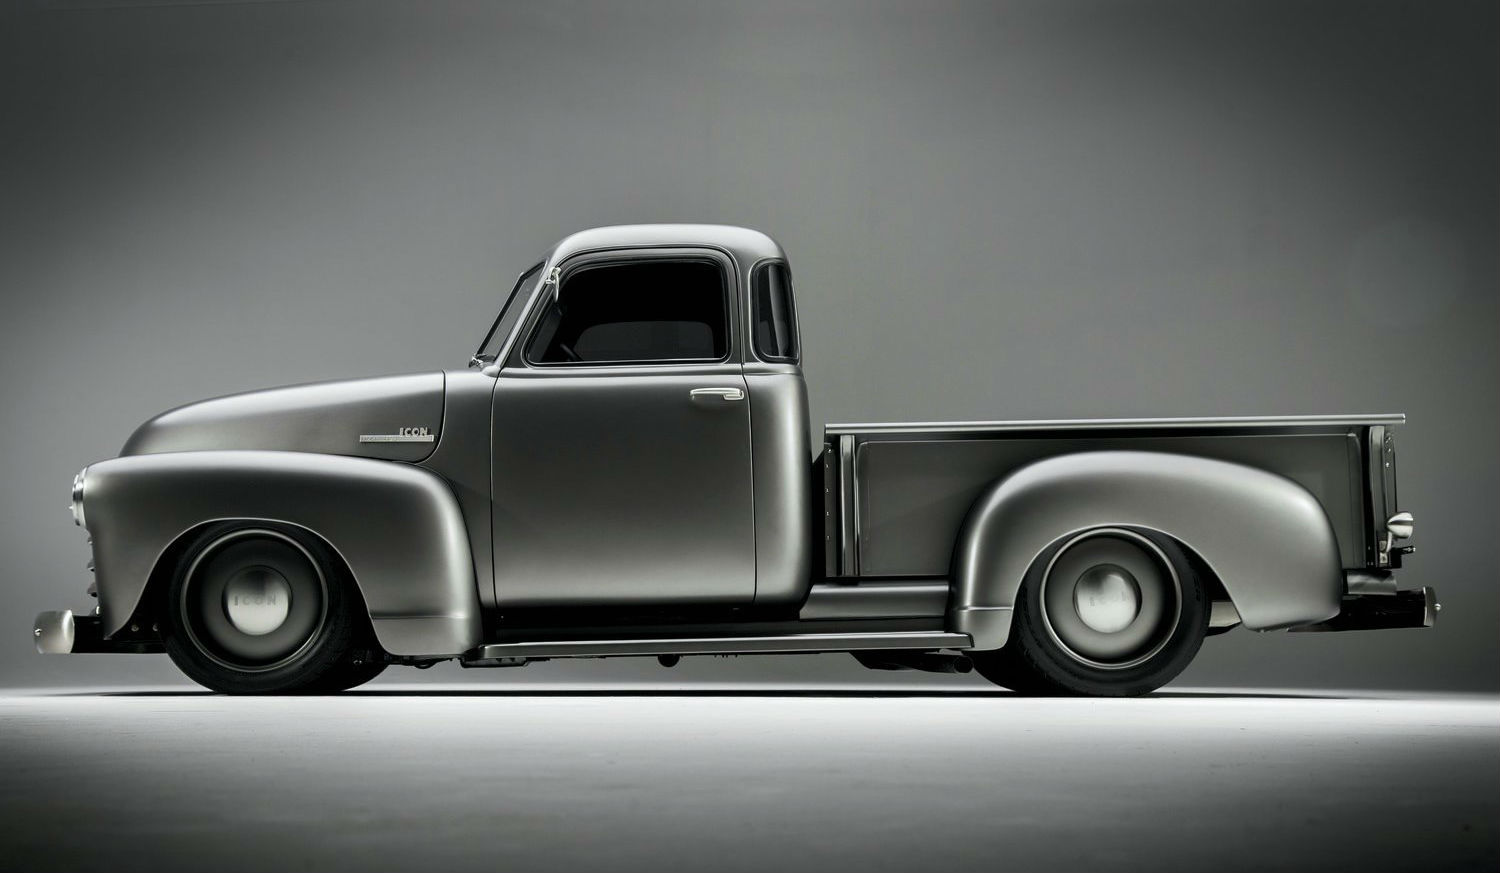 1950 Chevy Pickup Truck Muscle Cars Zone